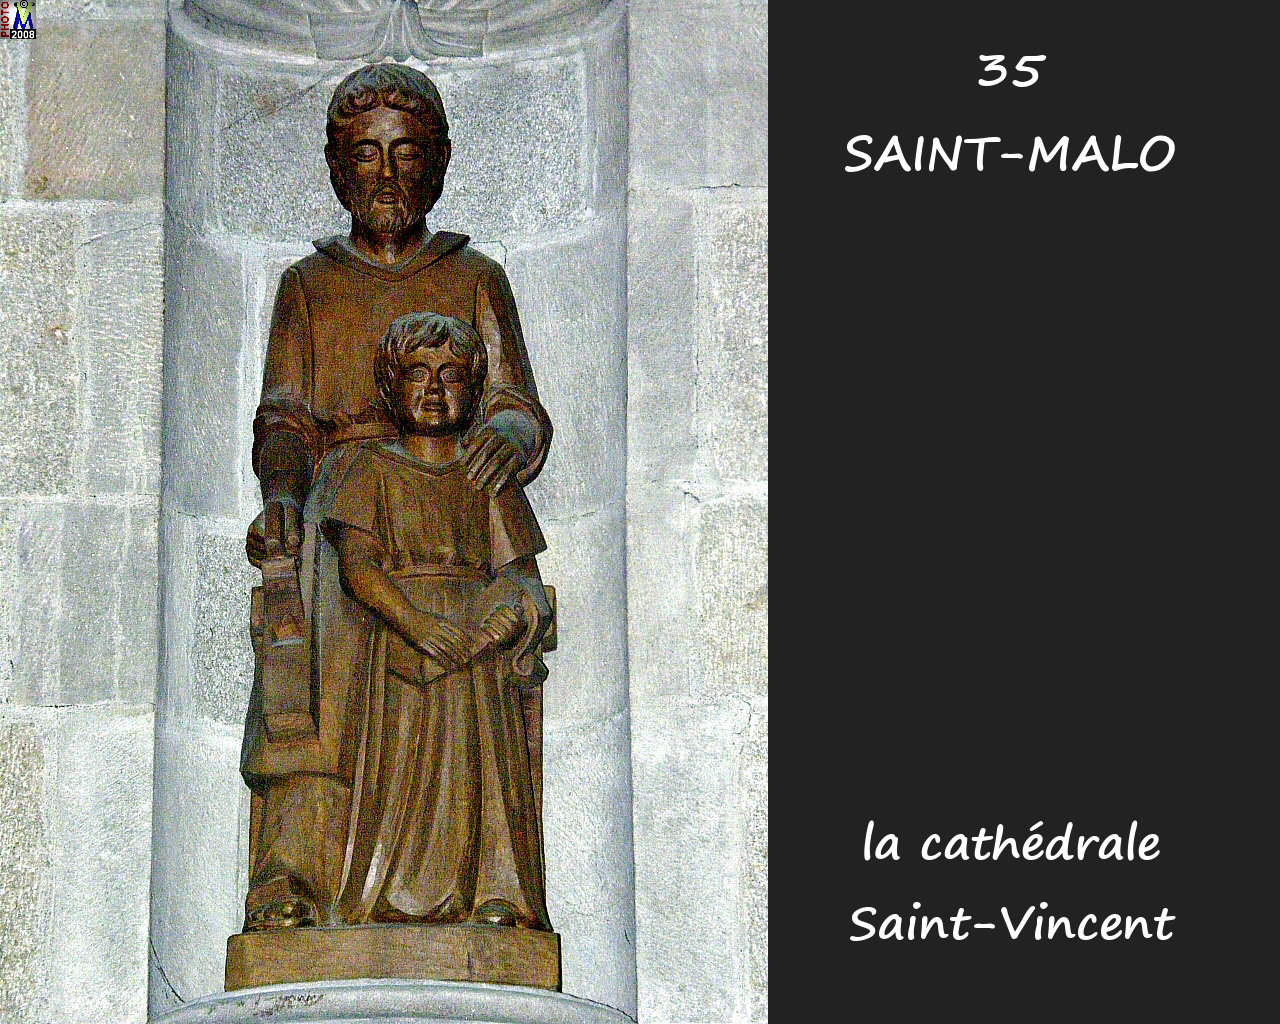 35StMALO_cathedrale_222.jpg